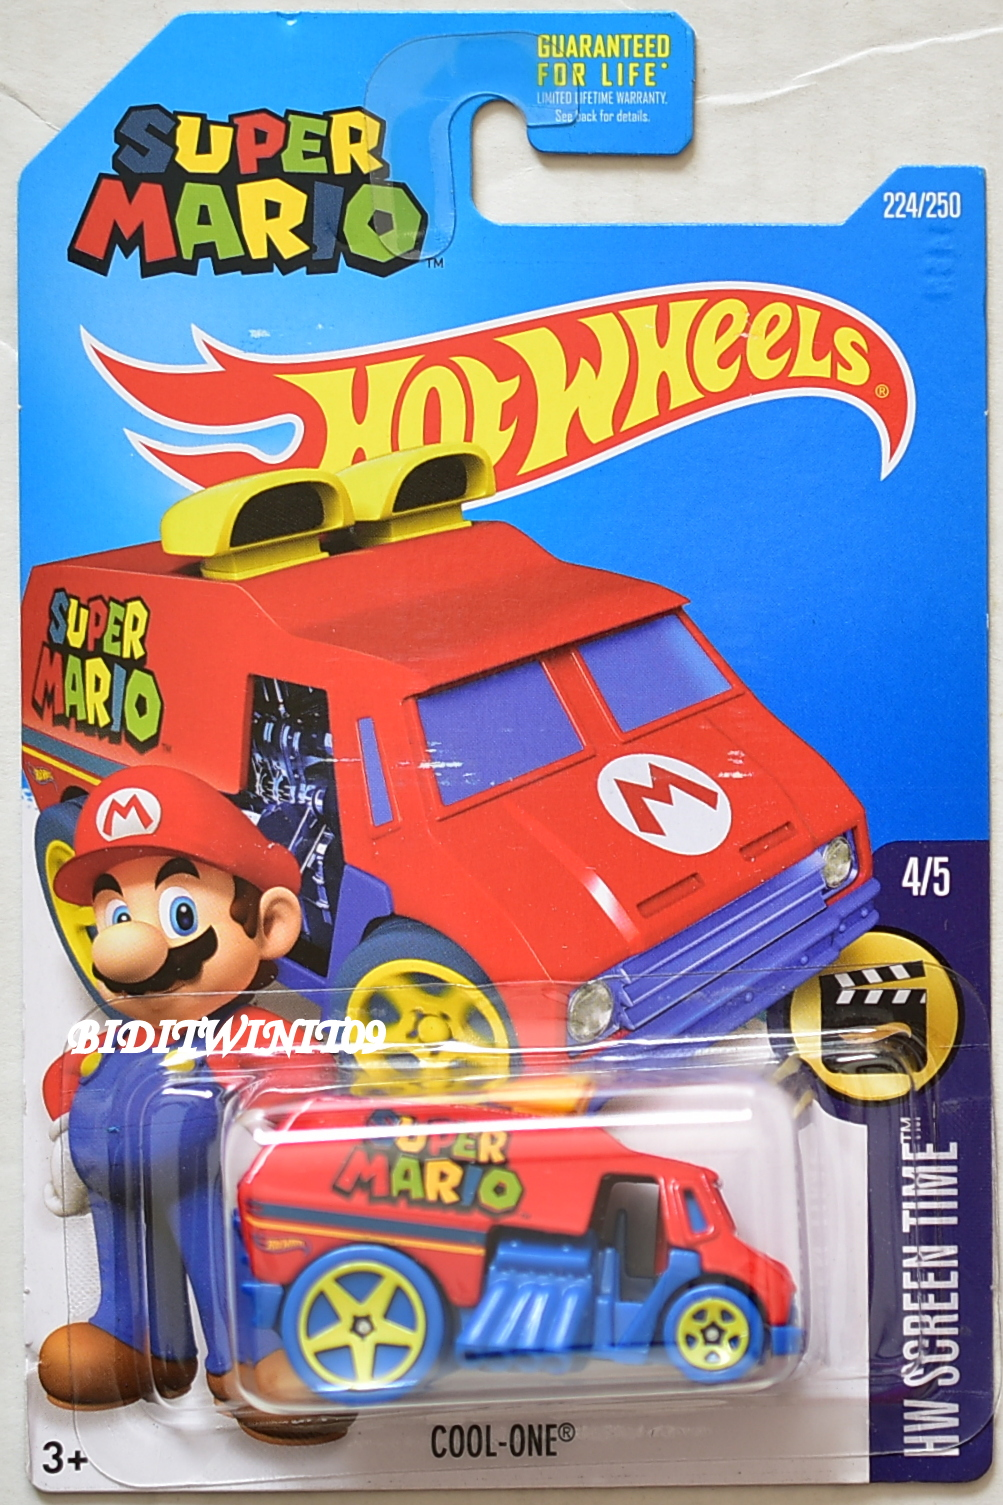 HOT WHEELS 2016 HW SCREEN TIME SUPER MARIO COOL-ONE #4/5